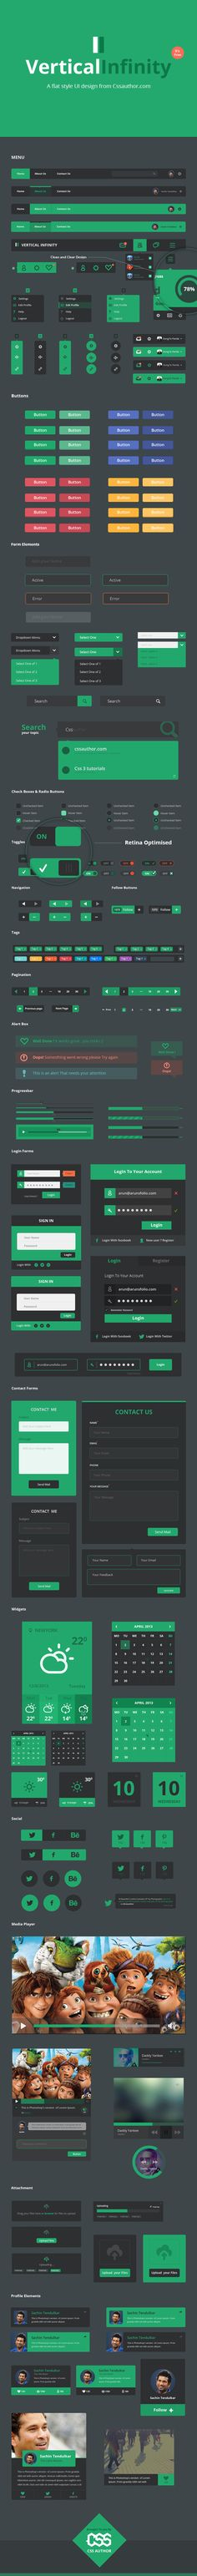 Vertical Infinity - A #Mega #Flat Style #UI Kit,  #Box, 3Buttons, #Calendar, #Checkbox, #Dropdown, #Facebook, #Form, #Free, #Graphic #Design, 3Green, #Icon, #Login, #Menu, #Navigation, #Pagination, #Pinterest, #Player, #Profile, #Progress, #PSD, #Radio, #Resource, #Retina, #SearchField, #Slider, #Social #Media, #Switch, #Tag, #Toggle, #Tooltip, #Twitter, #Upload, #Uploader, #Weather, #Widget